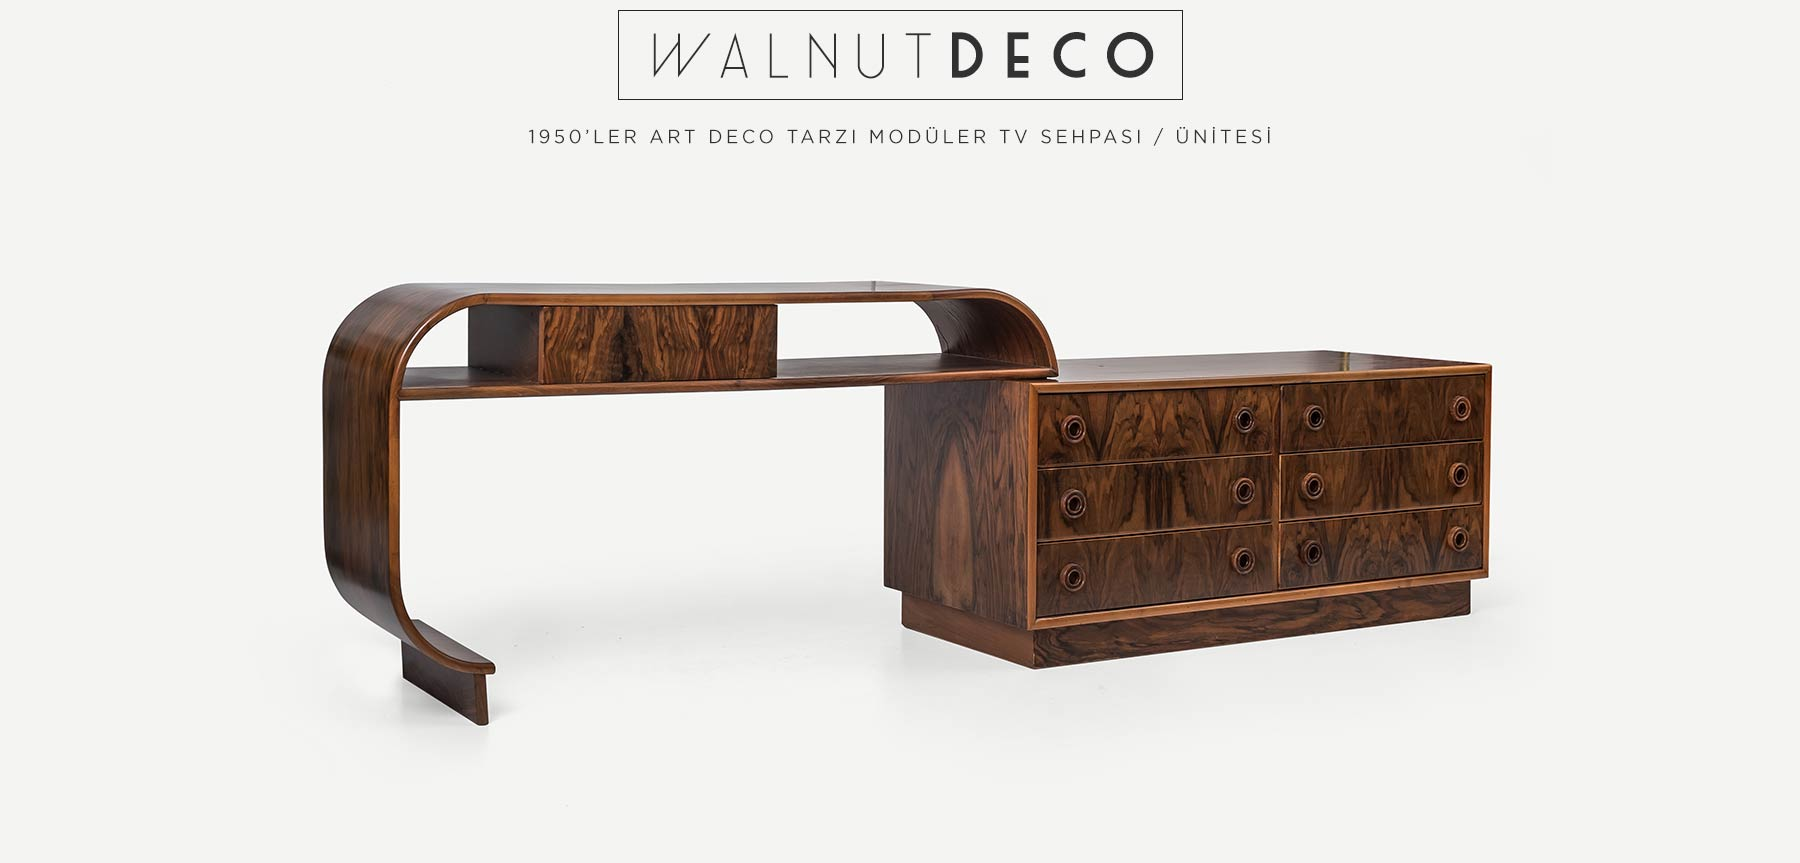 WALNUTDECO ART DECO TARZI TV SEHPASI / KONSOL'in resmi